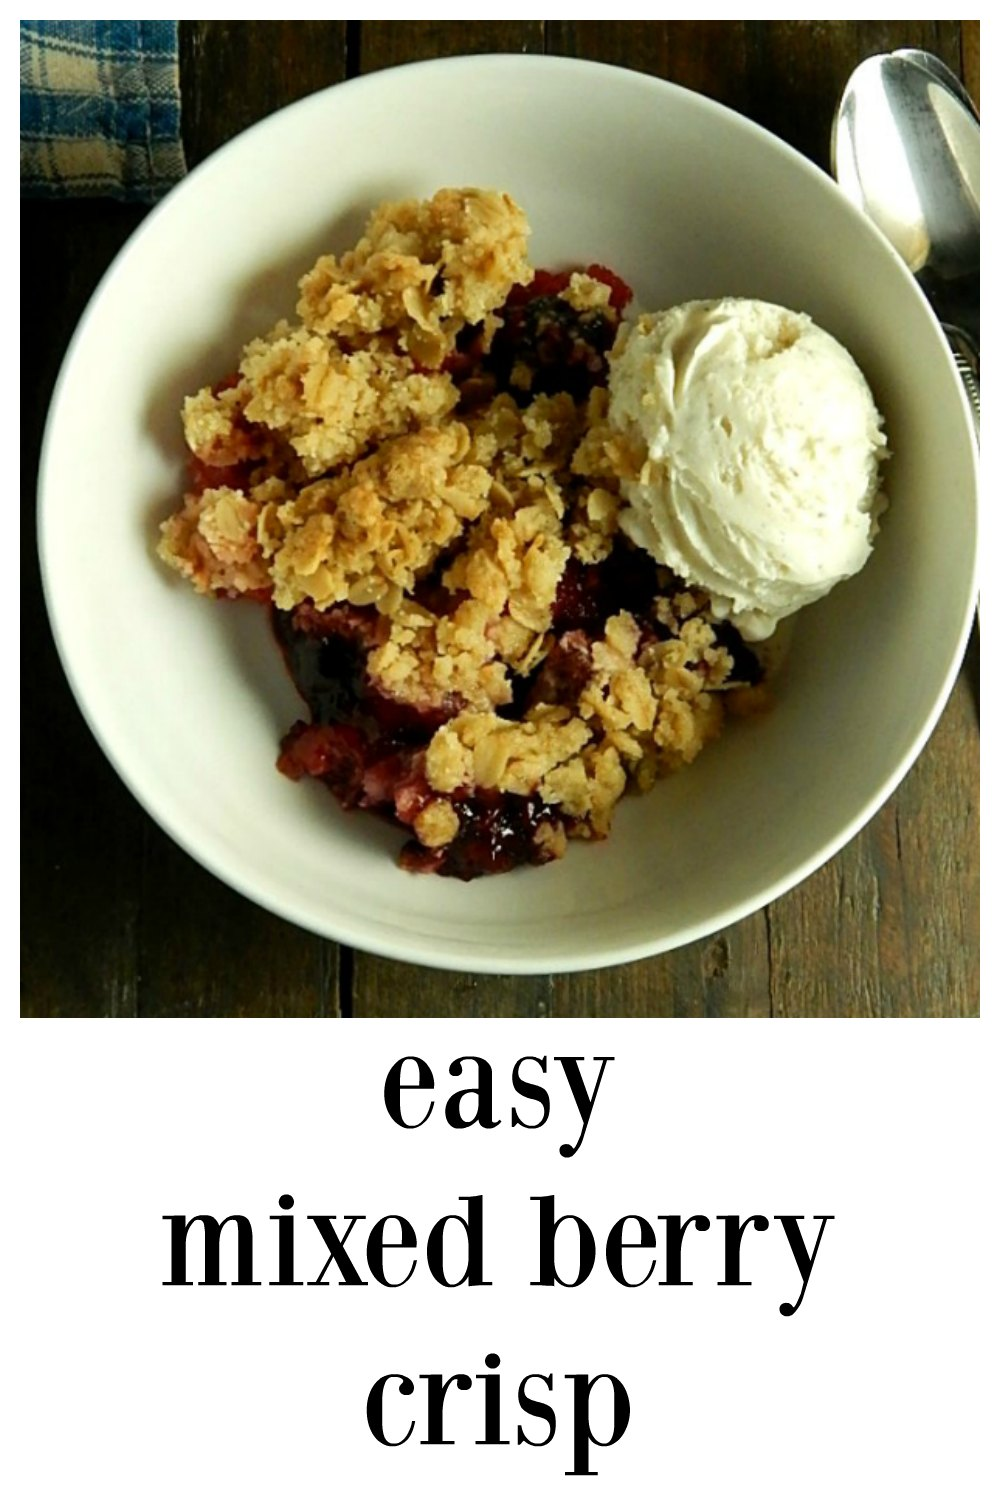 This easy, simple Mixed Berry Crisp lets the berries shine! The oatmeal streusel is crispy and crunchy and almost like granola. You'll go nuts over this! Use any berries you like. #EasyBerryCrisp #FruitCrisp #MixedBerryCrisp